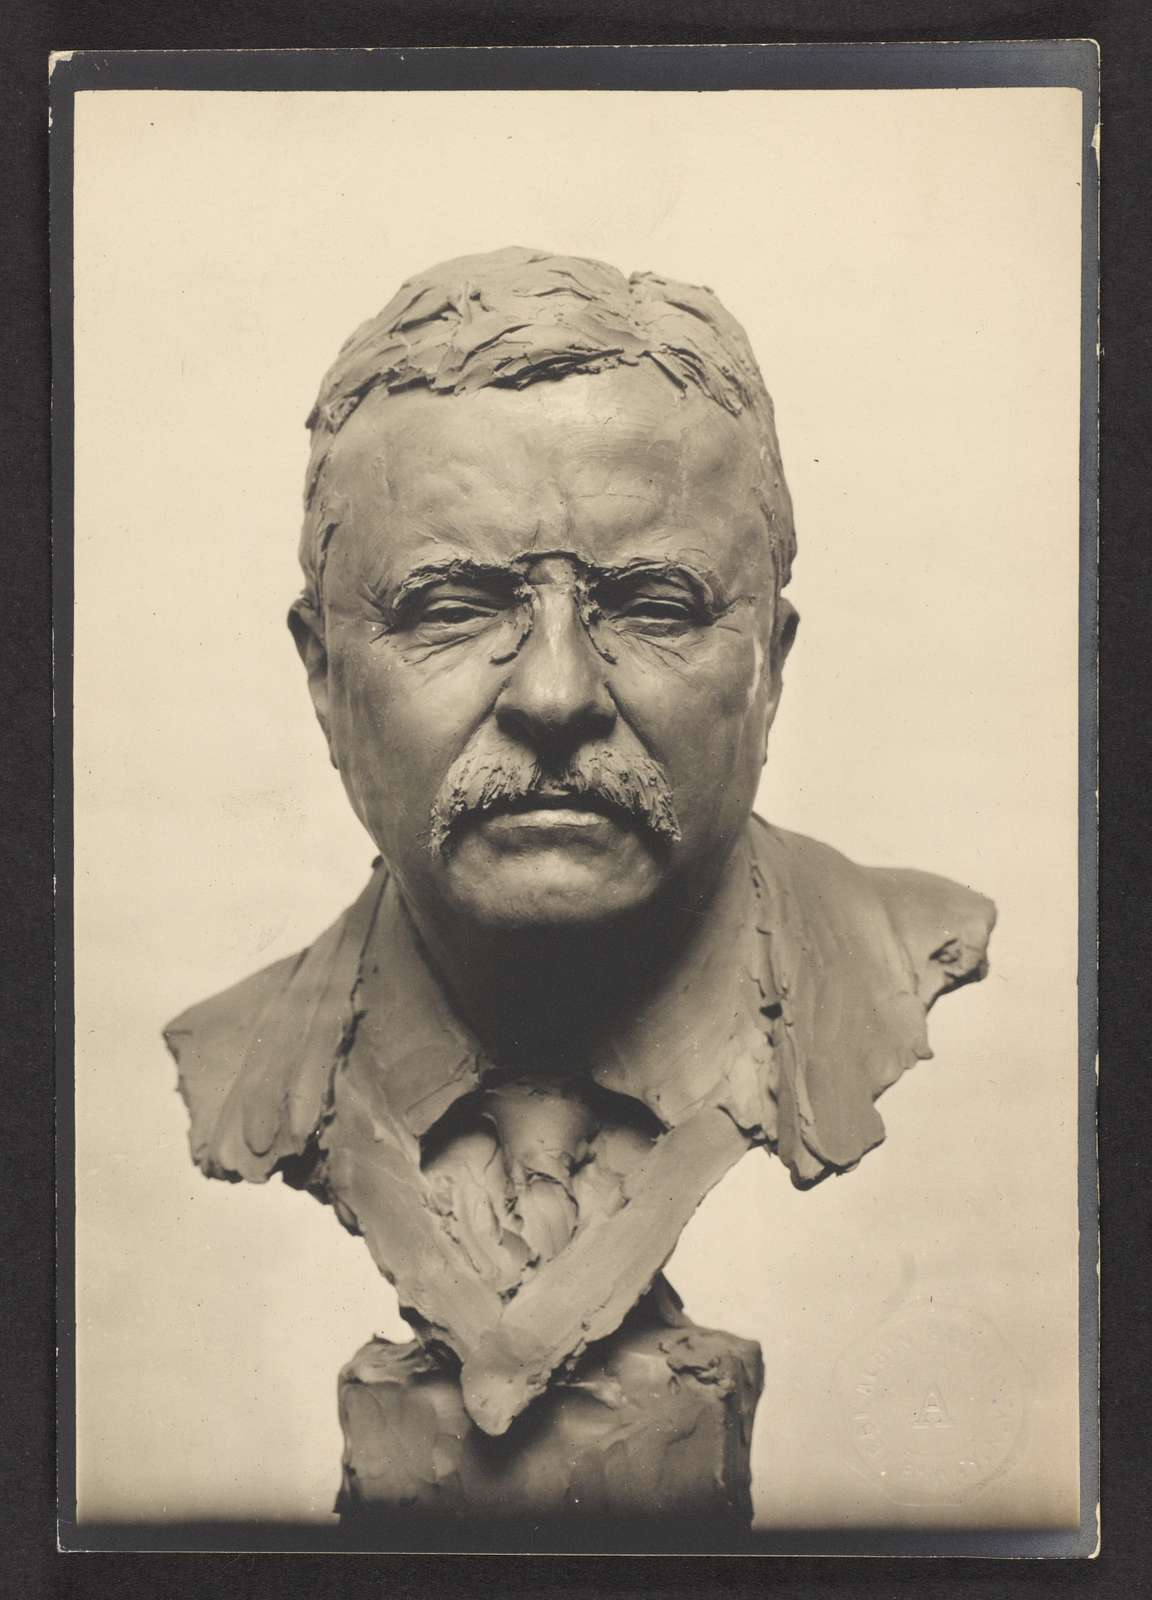 [Theodore Roosevelt, portrait bust, full front view]